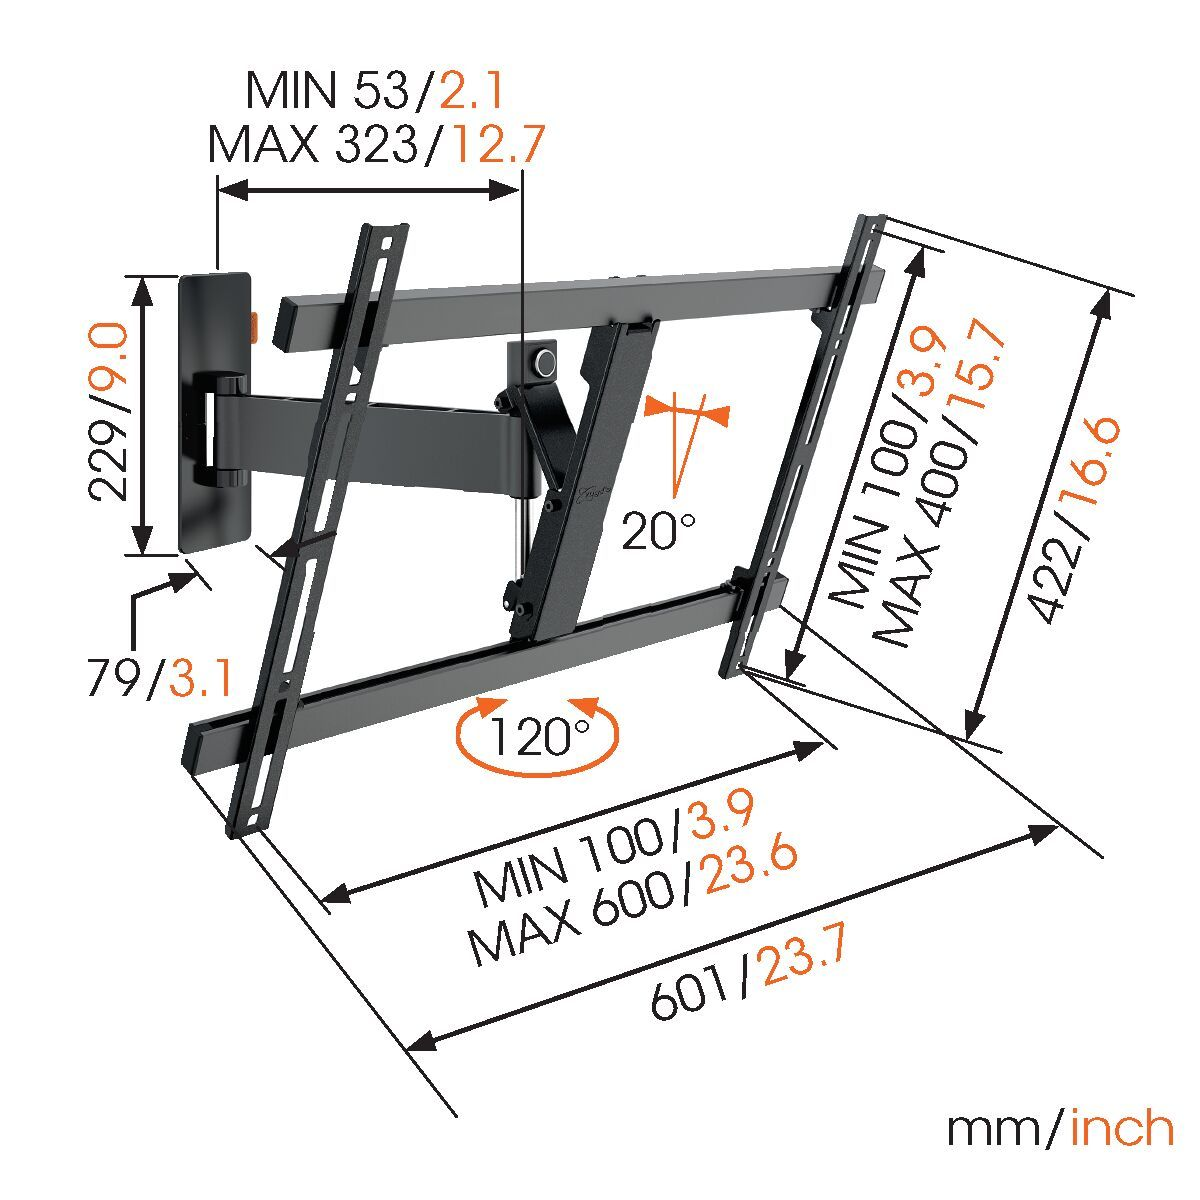 Vogel's W52080 Full-Motion TV Wall Mount (black) - Suitable for 40 up to 65 inch TVs - Motion (up to 120°) - Tilt up to 20° - Dimensions